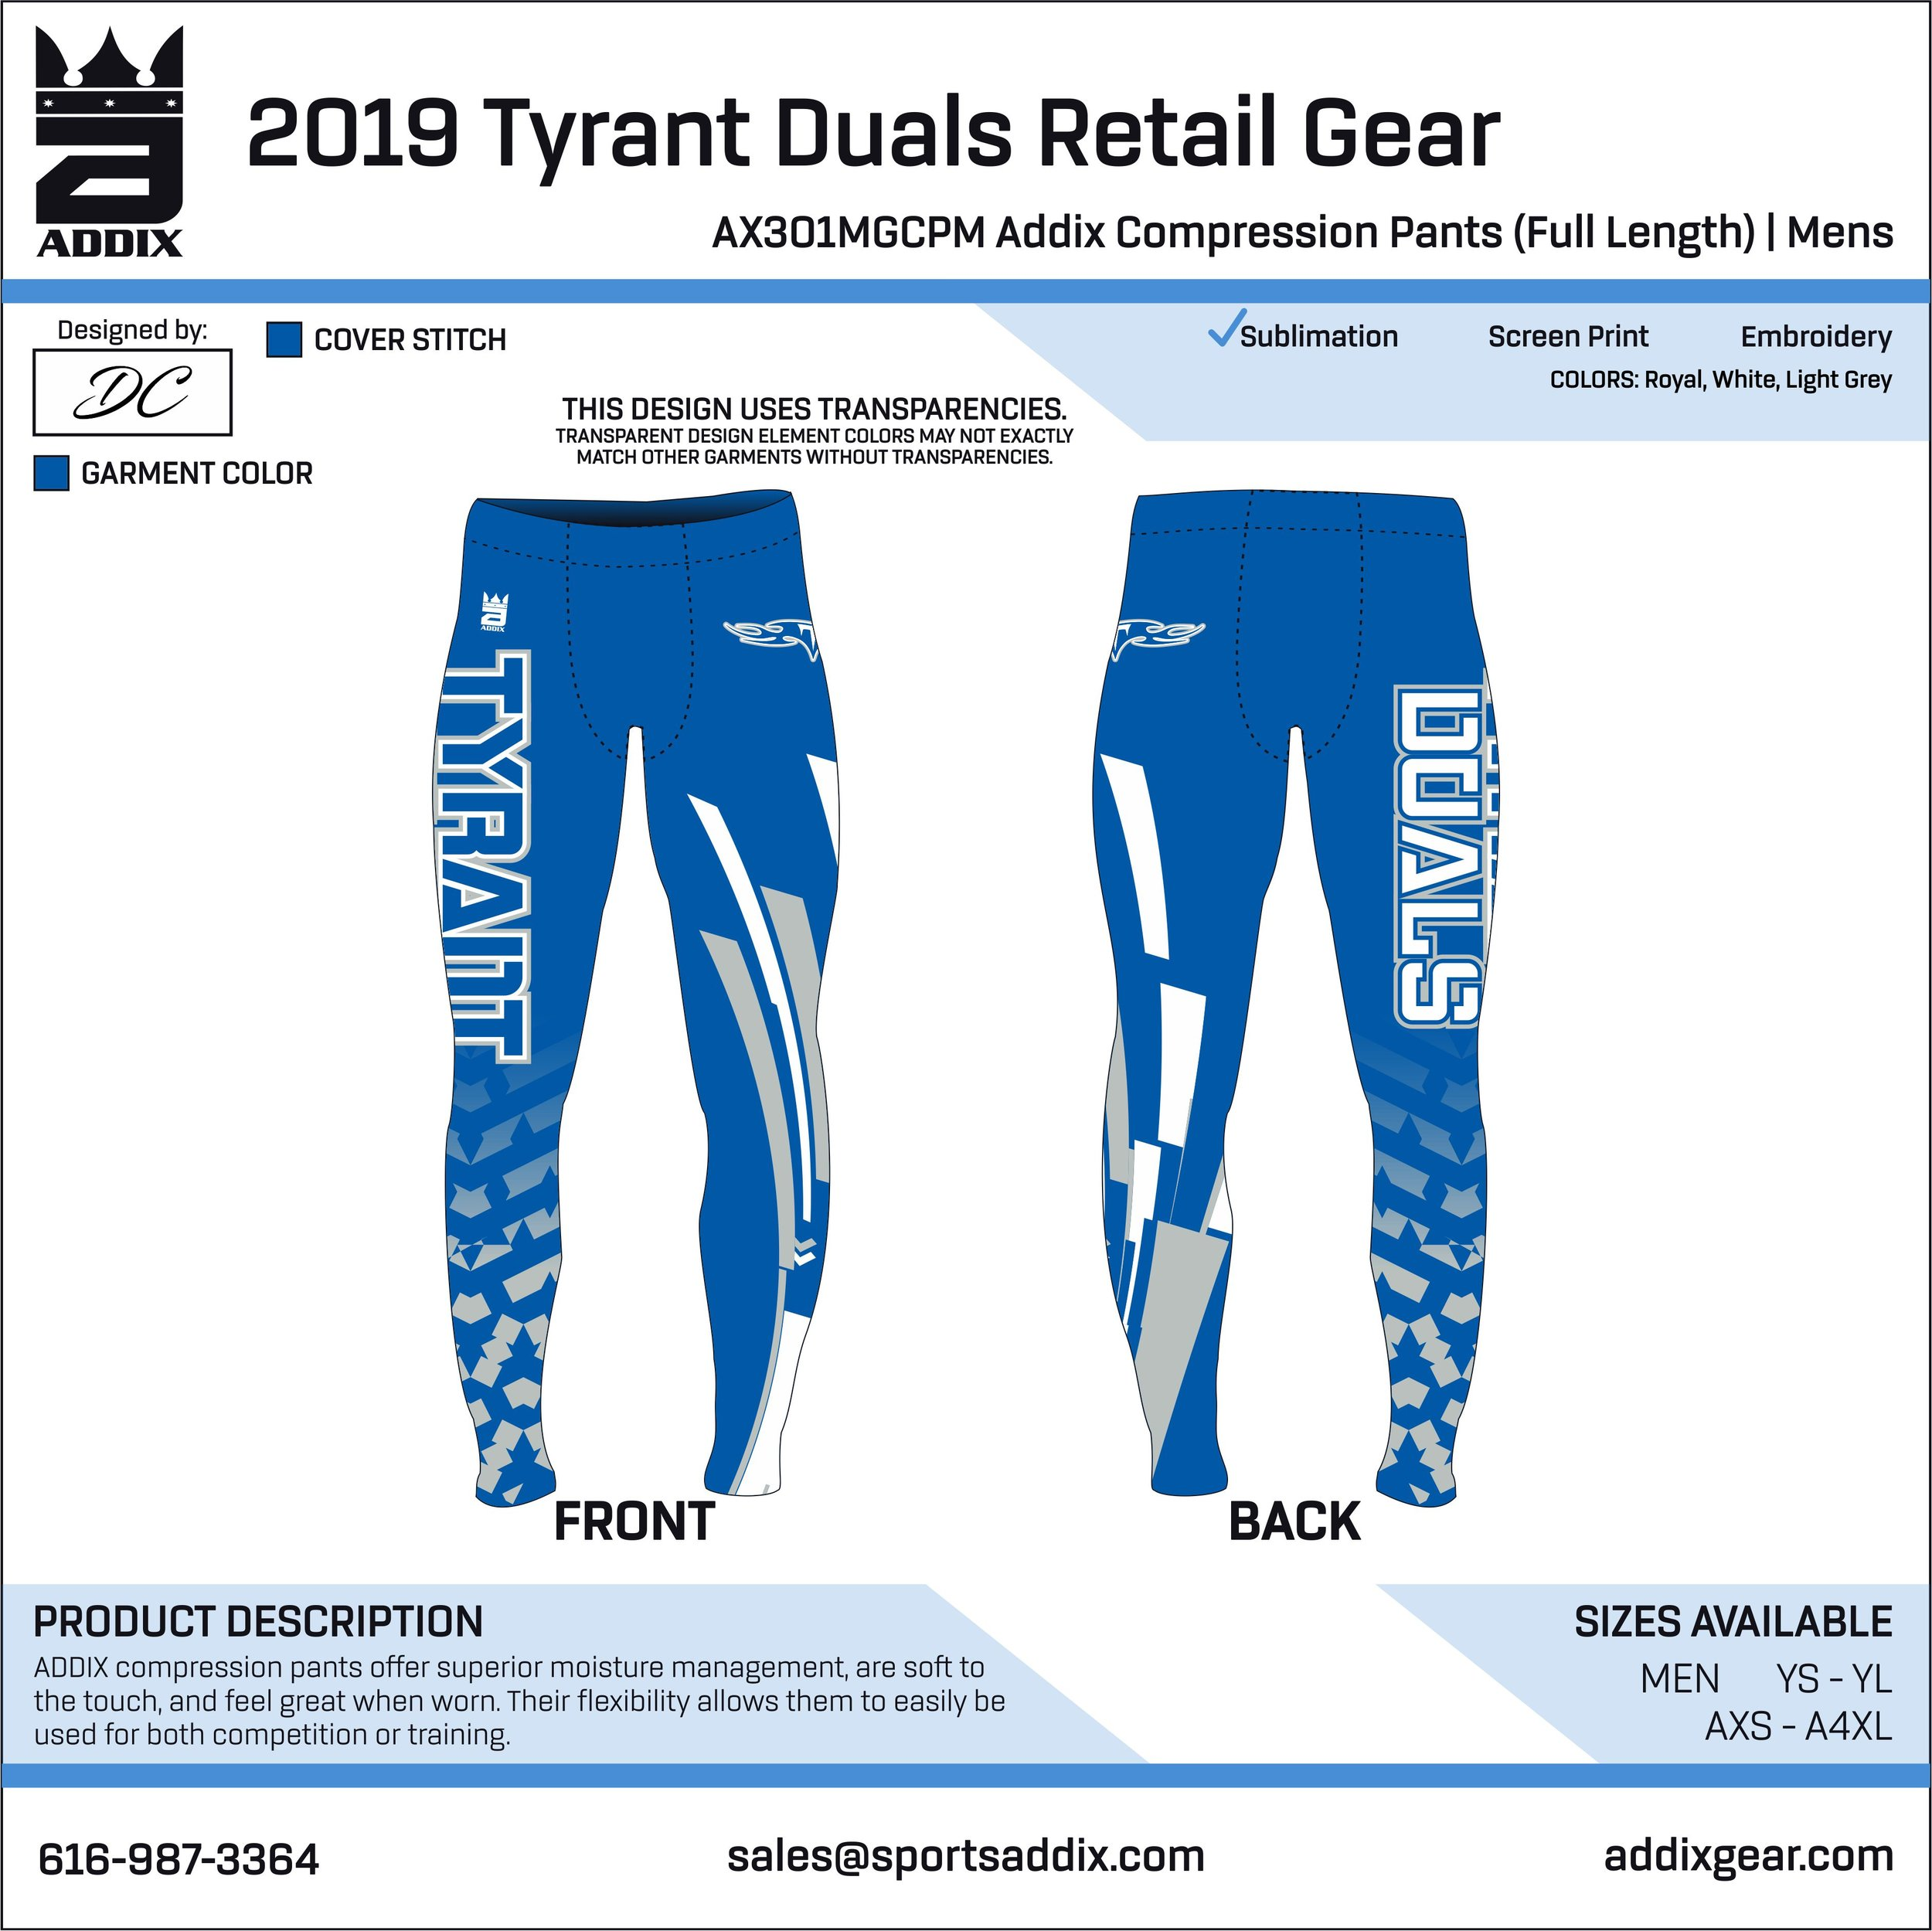 2019 Tyrant Duals Retail Gear_2018_12-18_DC_Comp Pants.jpg